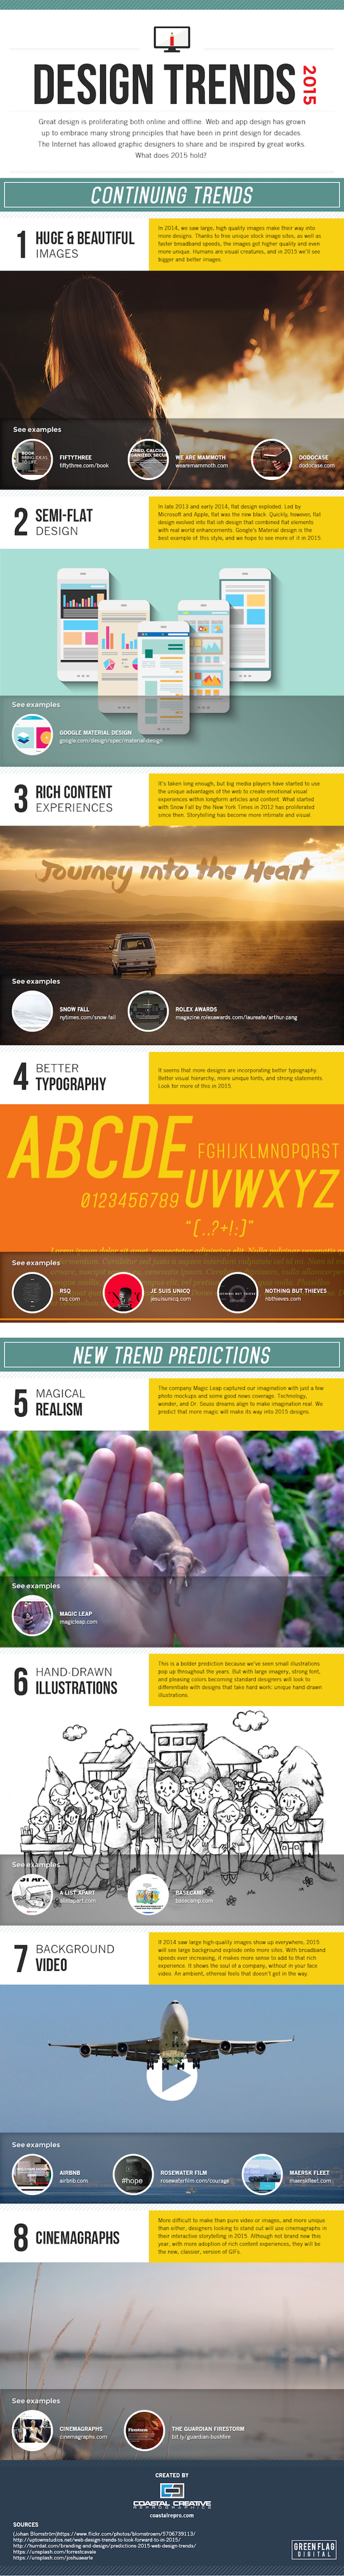 Marketing Design Trends for 2015 Infographic image